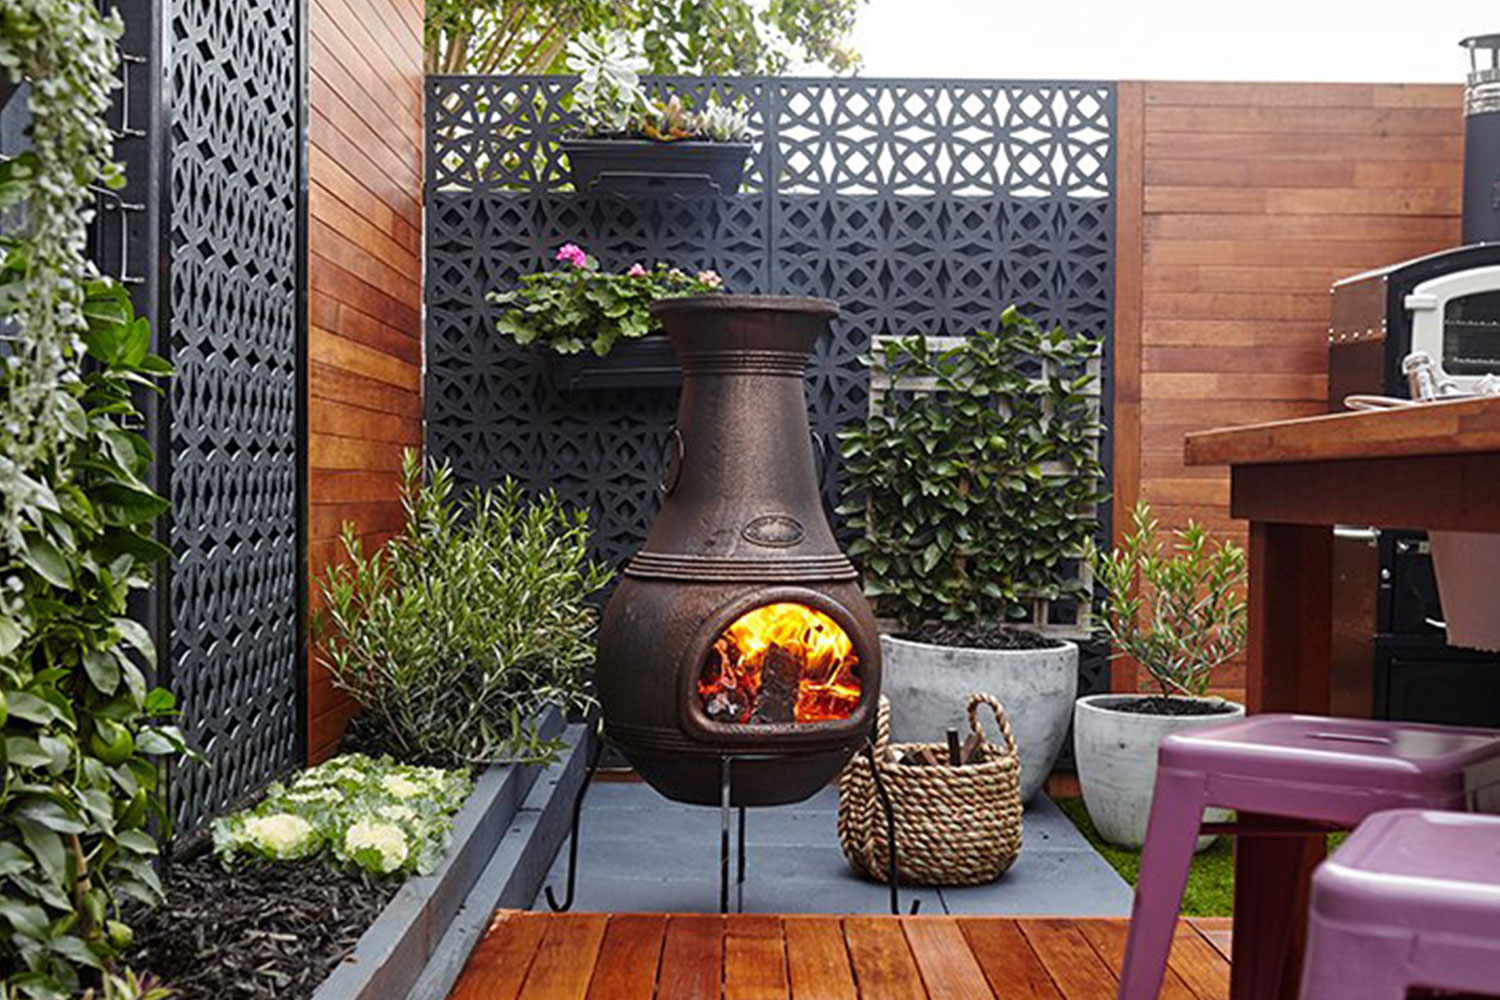 How to choose a decorative outdoor screen for your garden ...